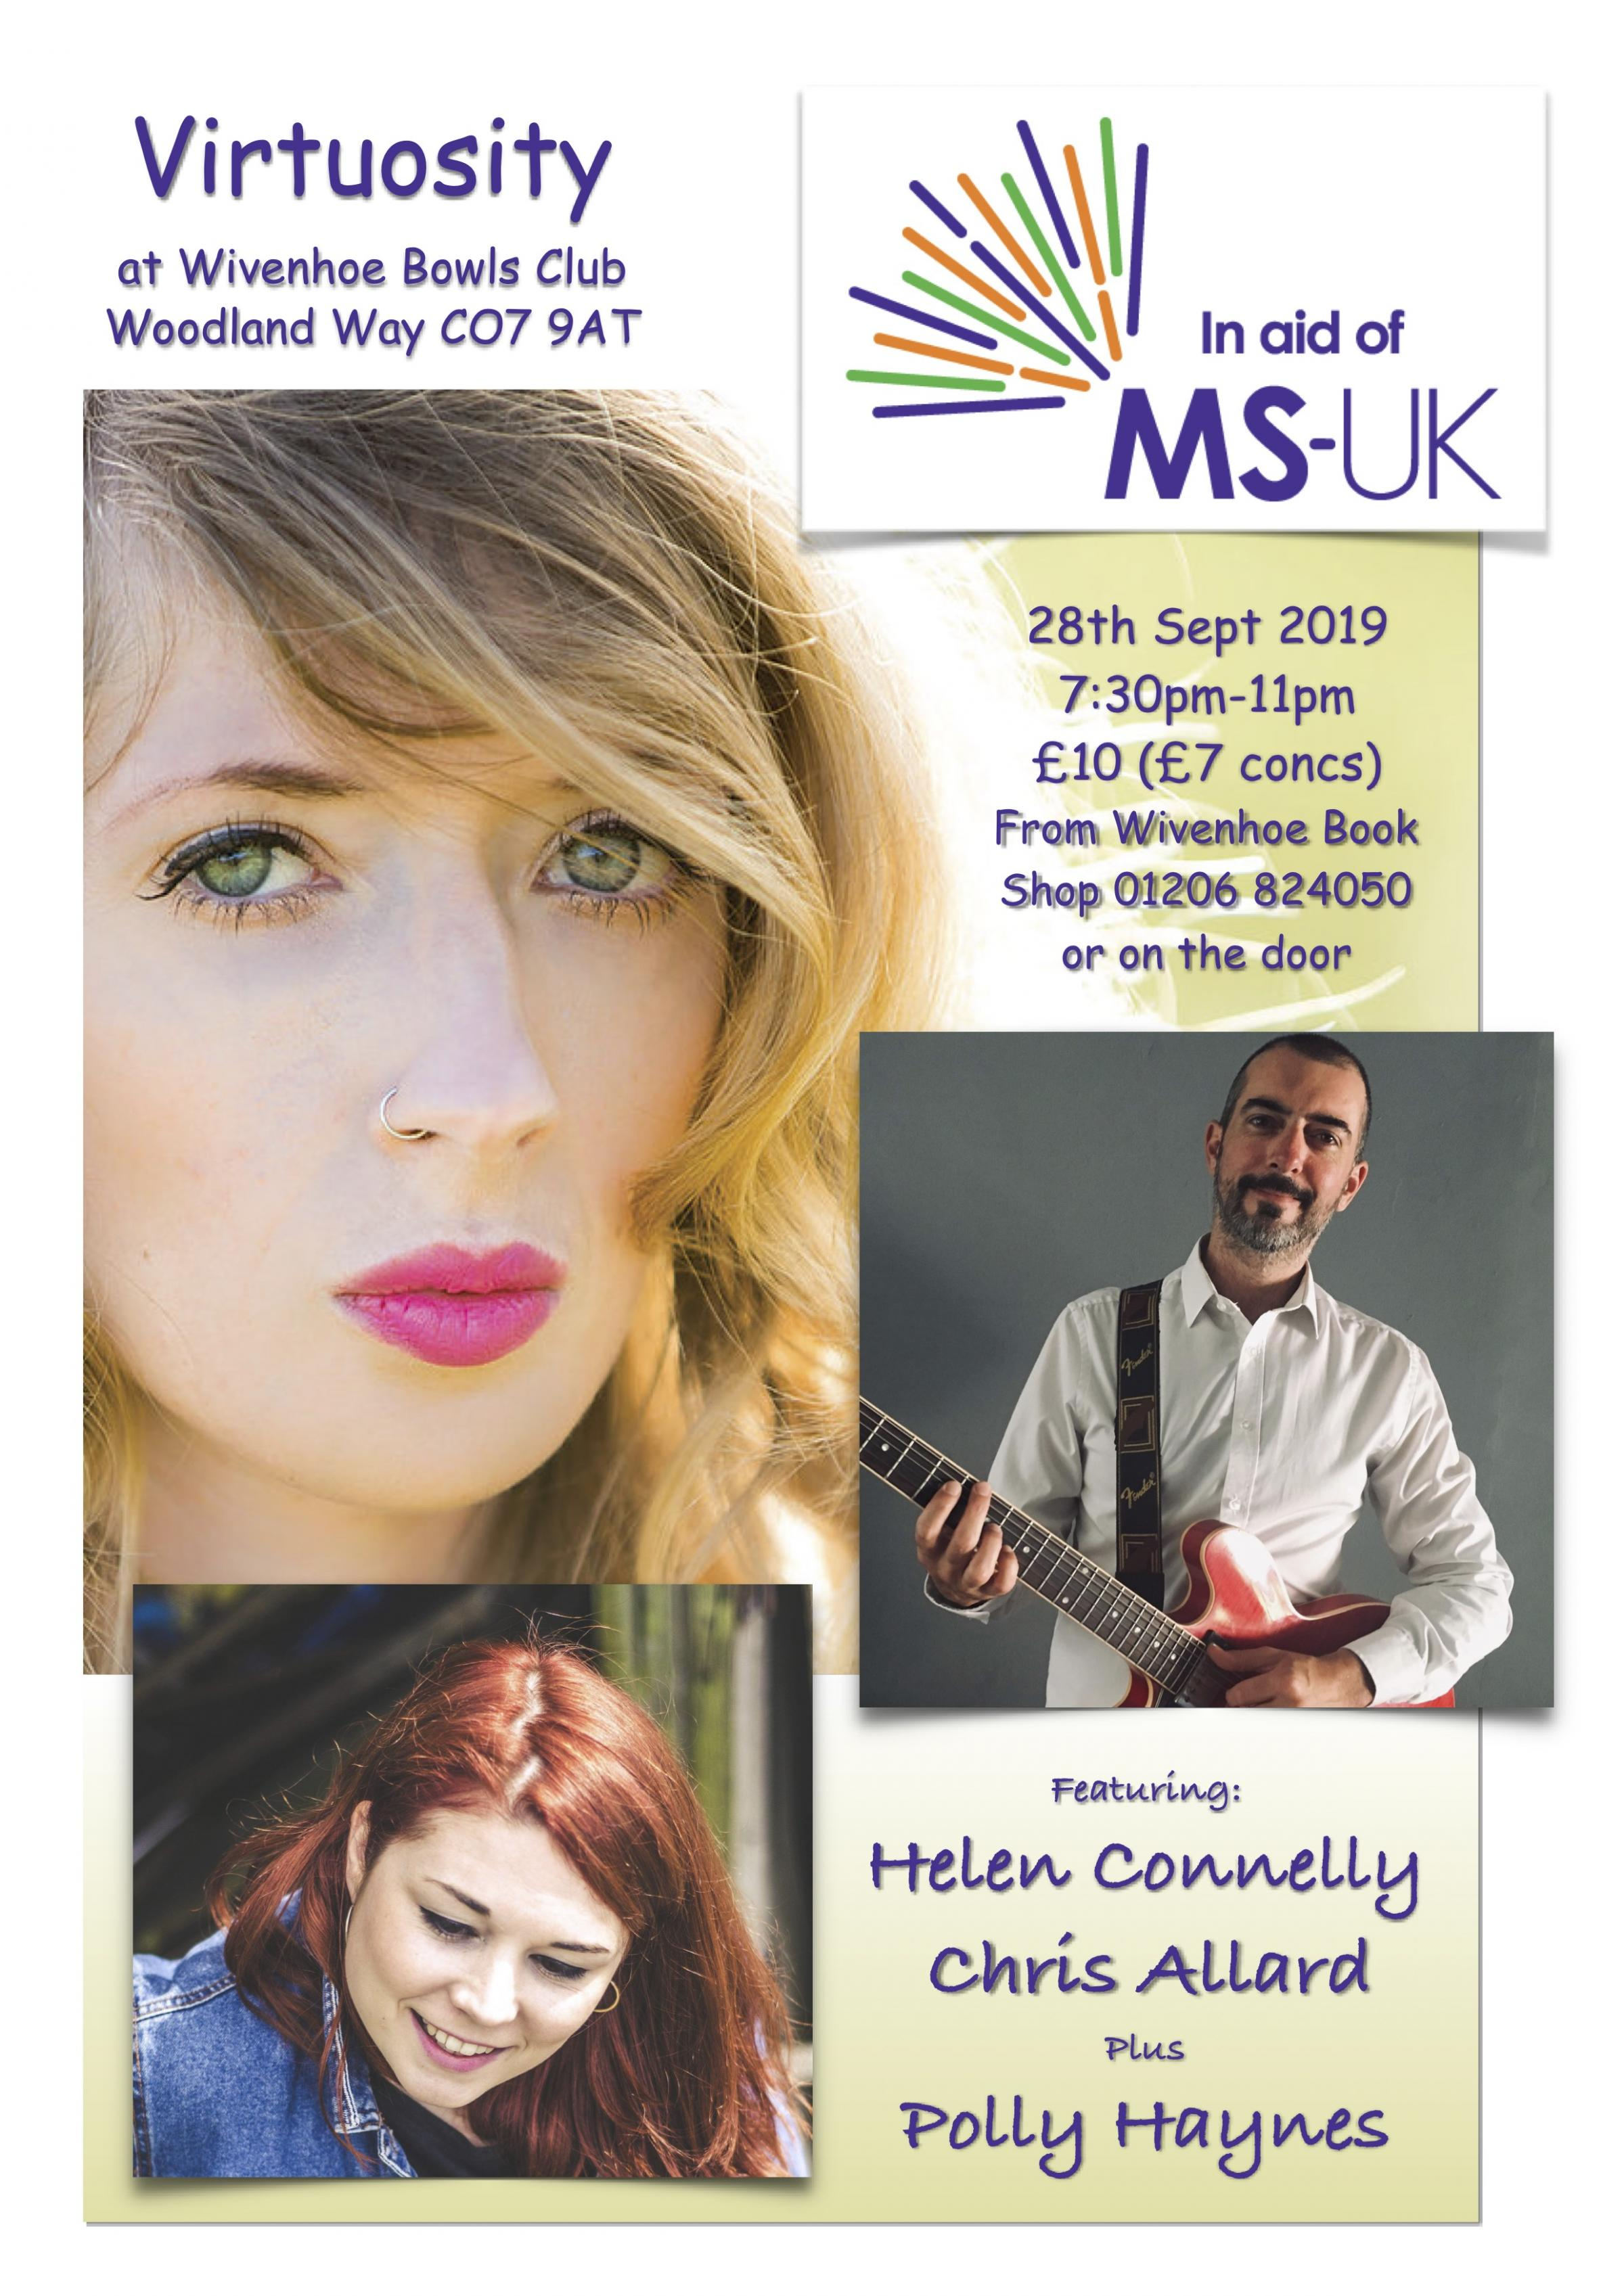 Virtuosity in aid of MS-UK